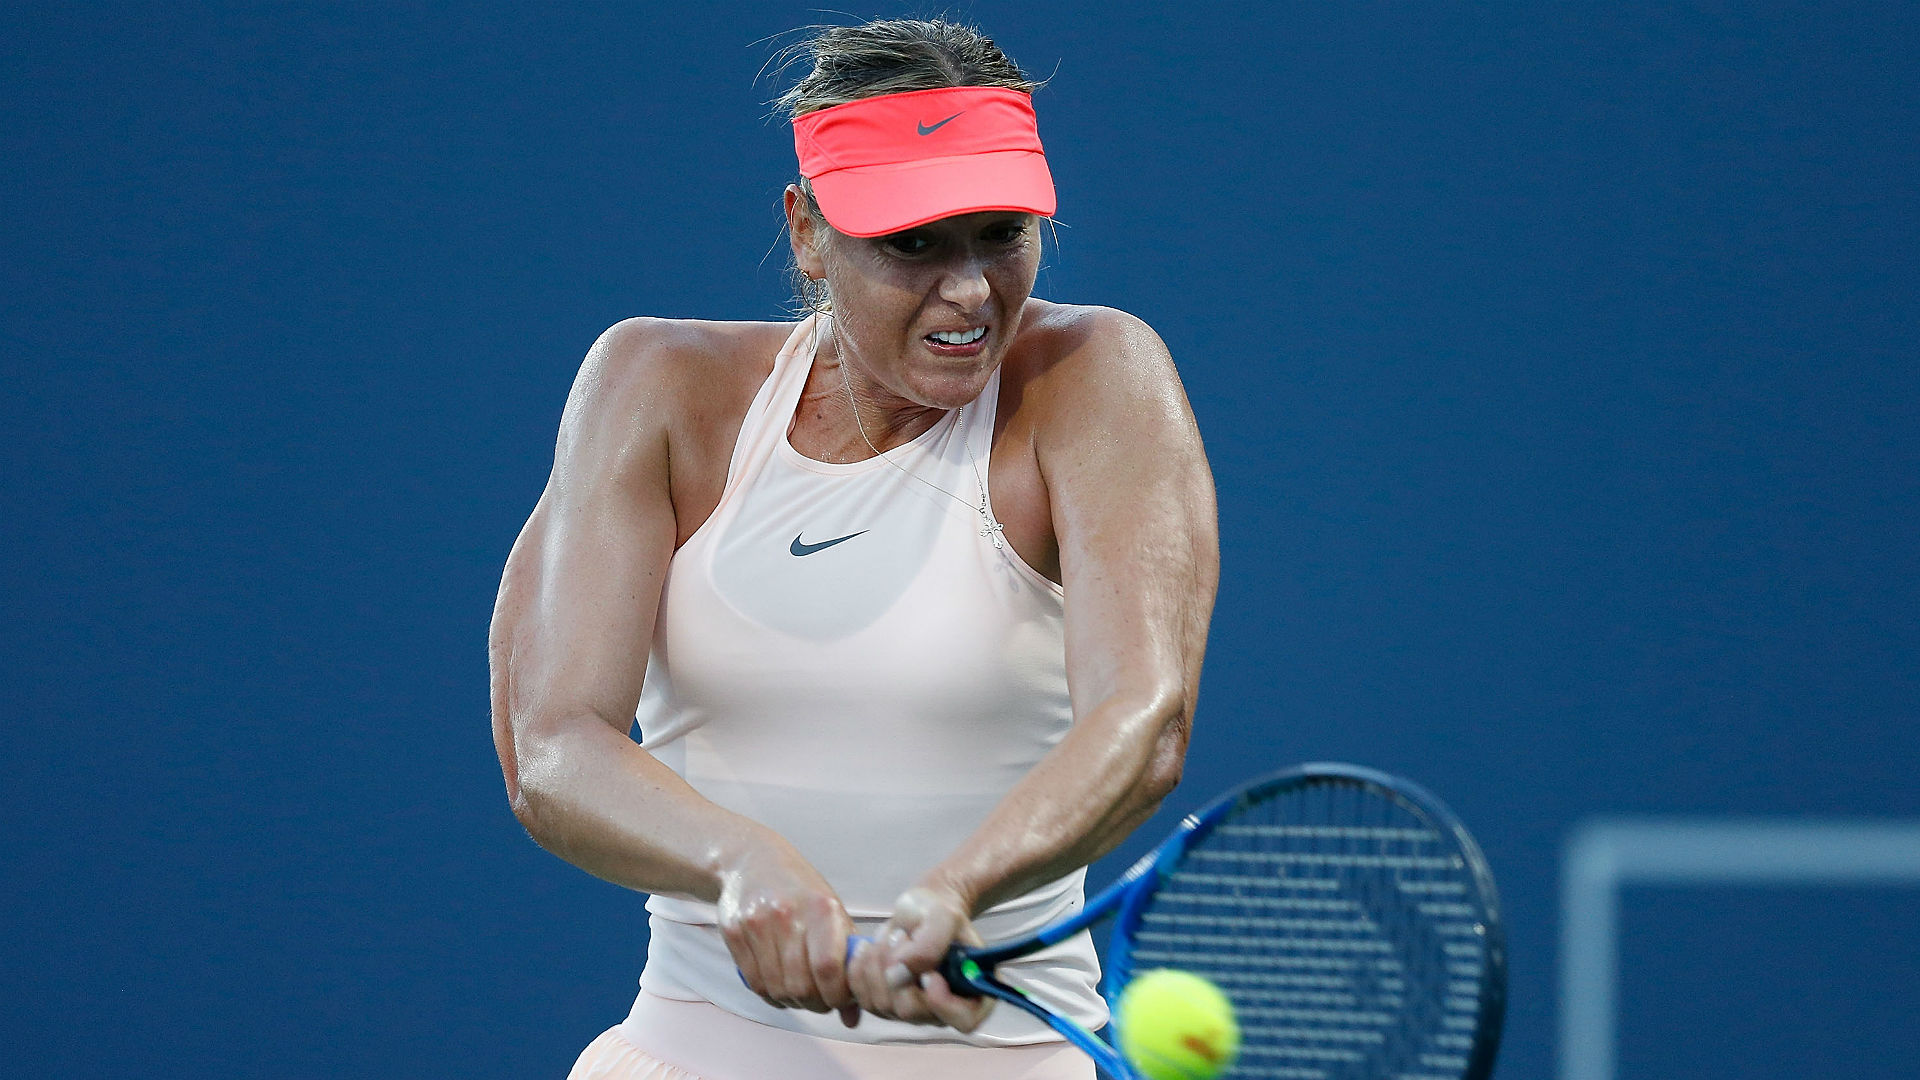 Maria Sharapova suffers another injury setback as she withdraws from Stanford